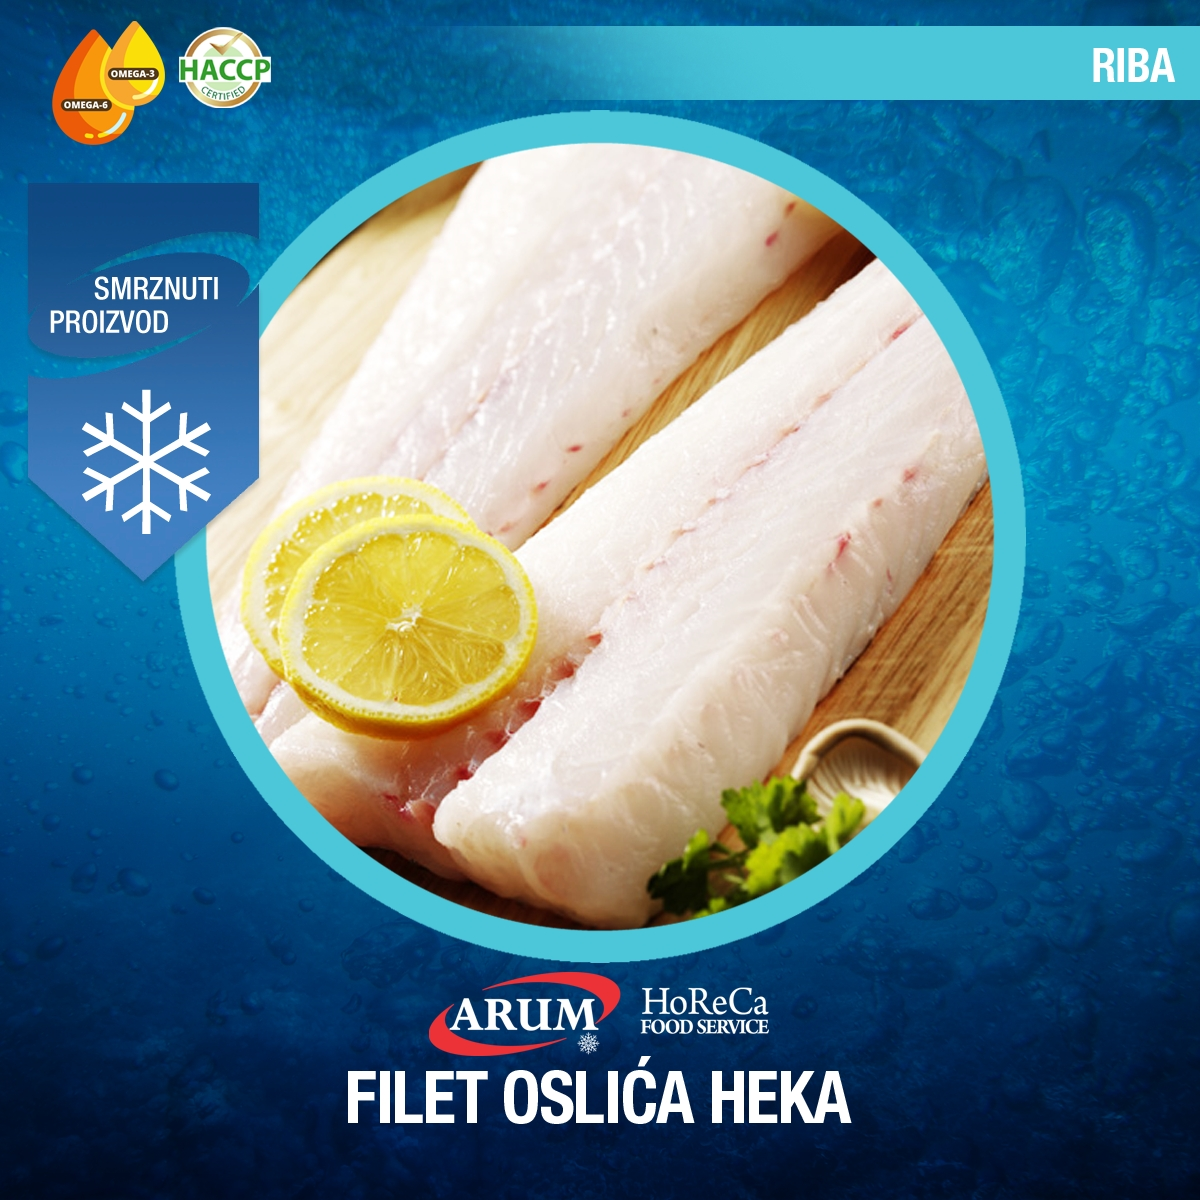 Filet oslica heka